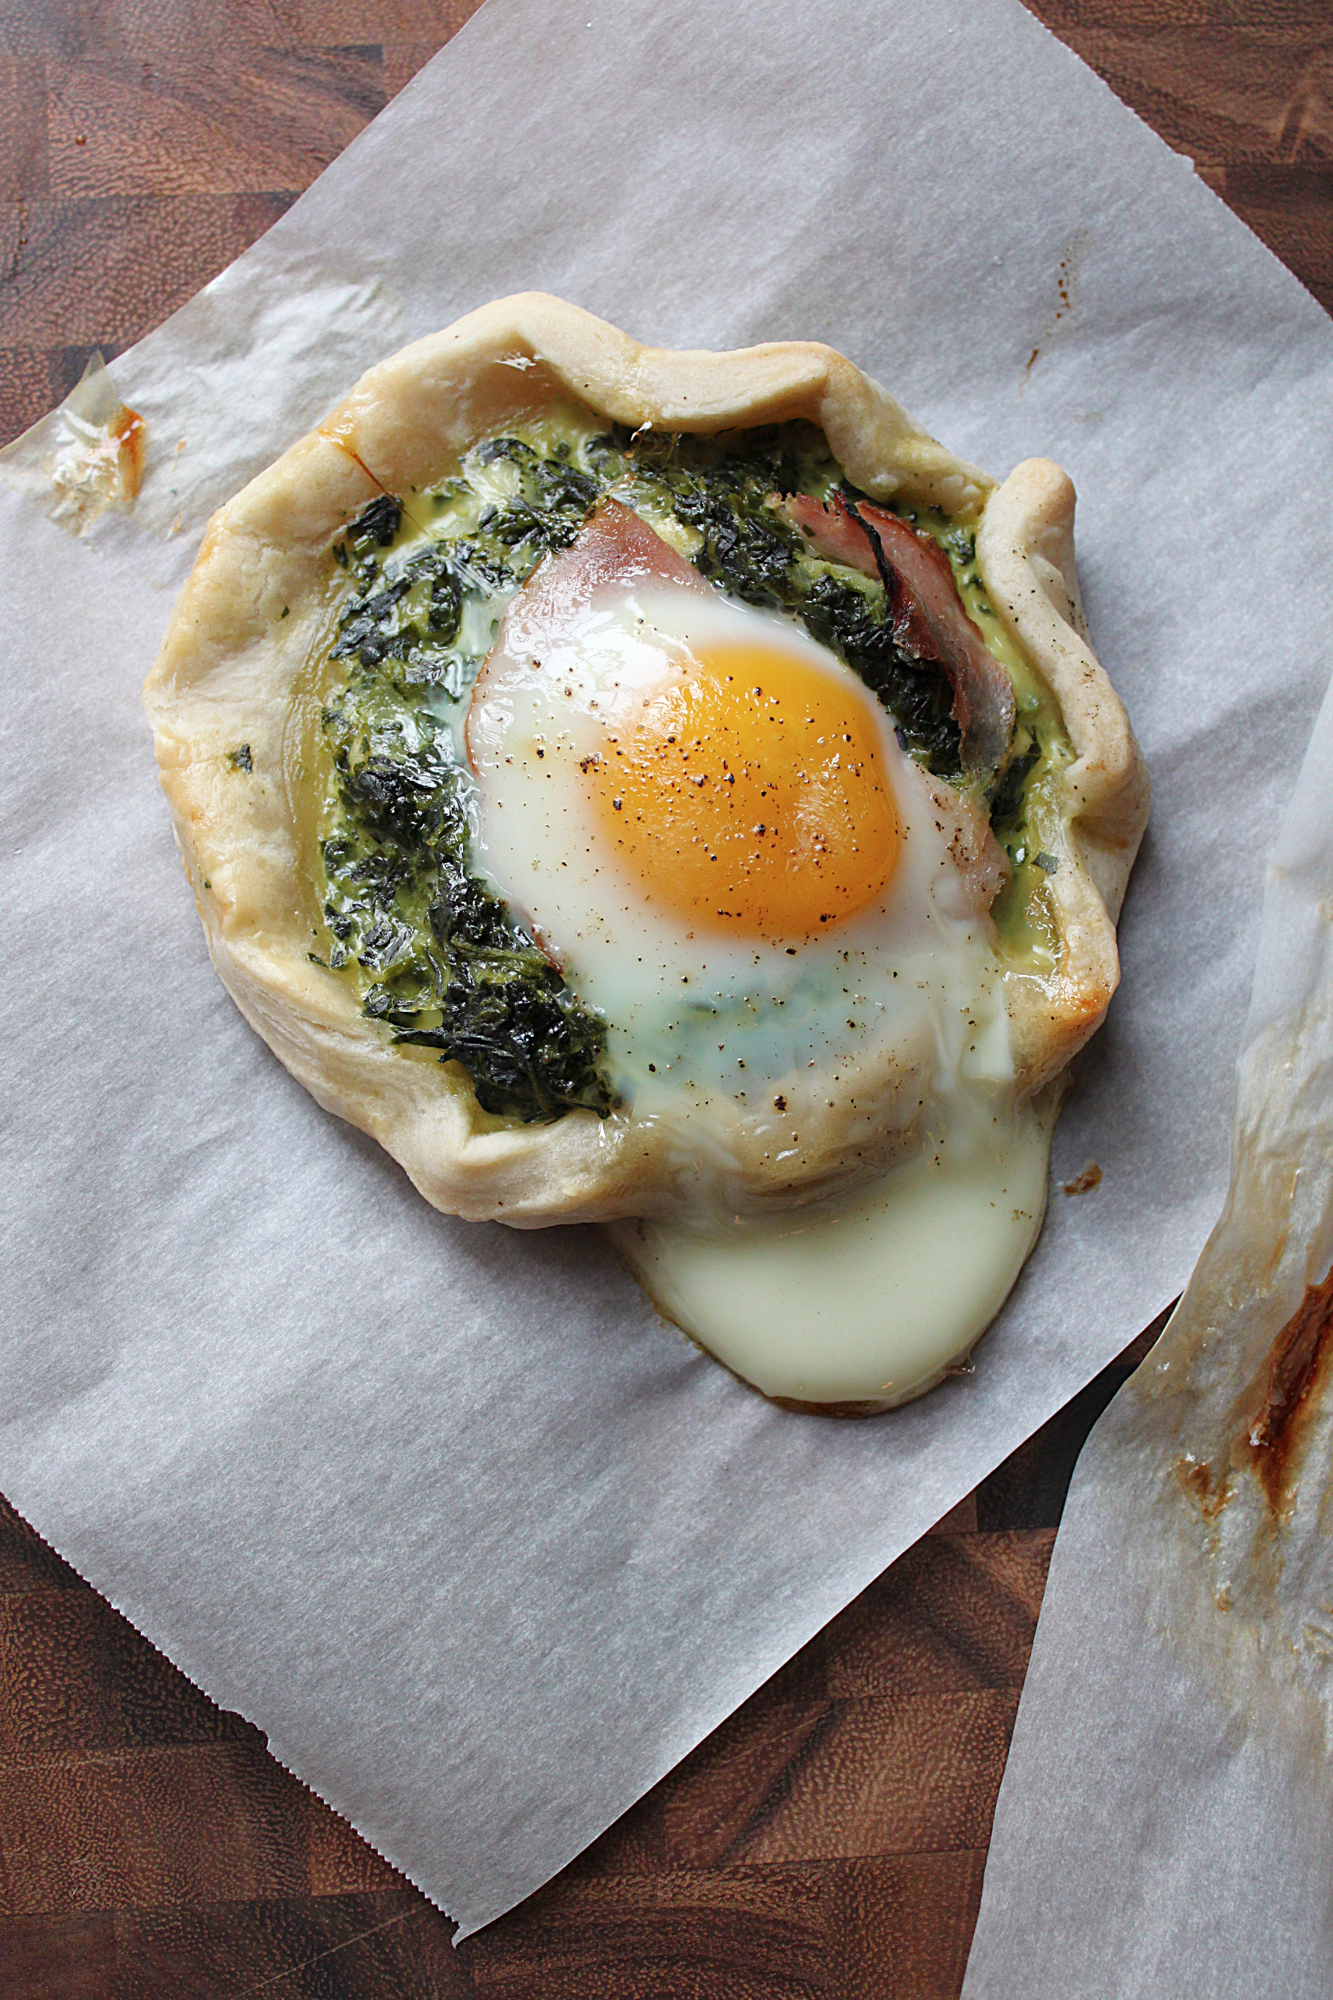 ... From the Kitchen: Spinach & Baked Egg Galette | {love+cupcakes} Blog